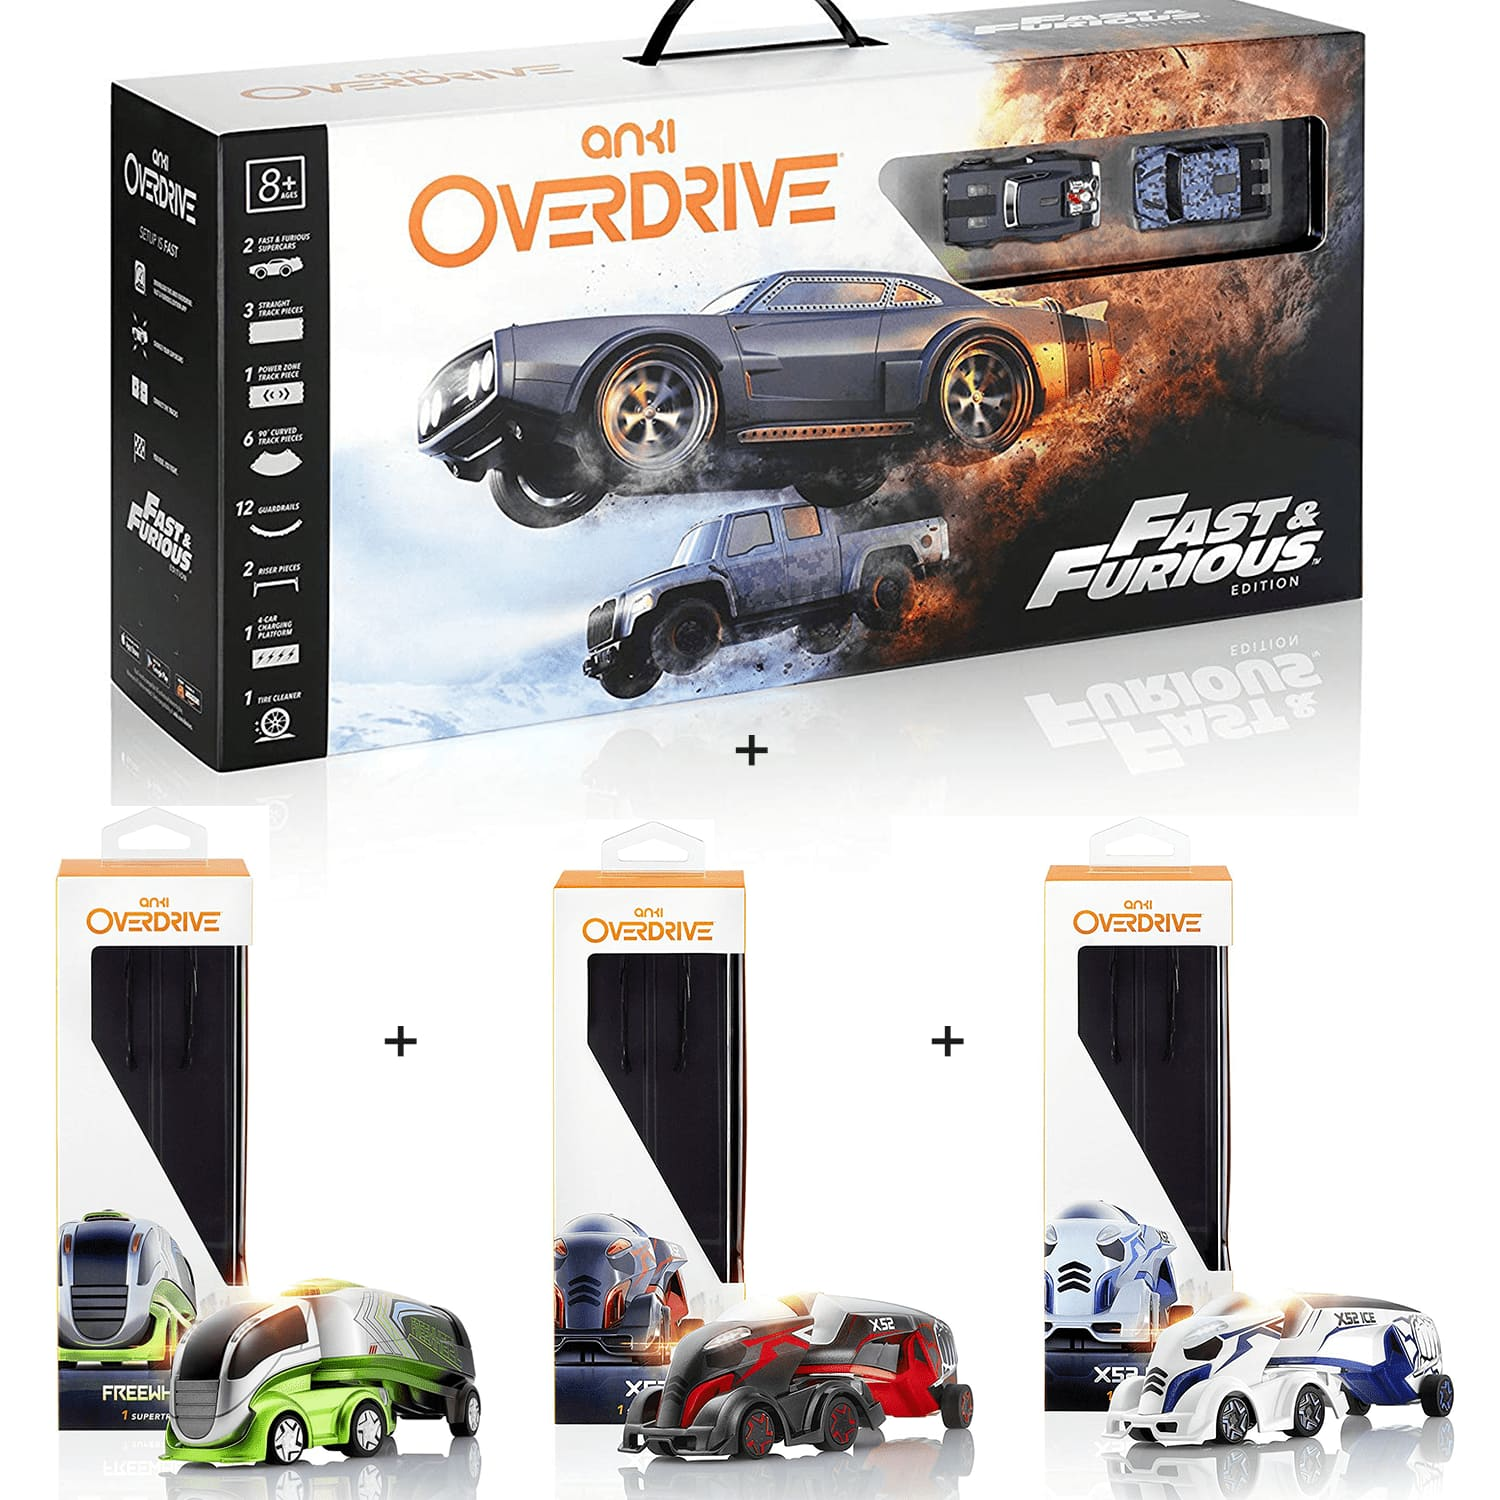 Anki Overdrive Fast & Furious Edition + 3 Supertrucks Bundle for $74.95 + ($11.24) in Rakuten Points + Free Shipping